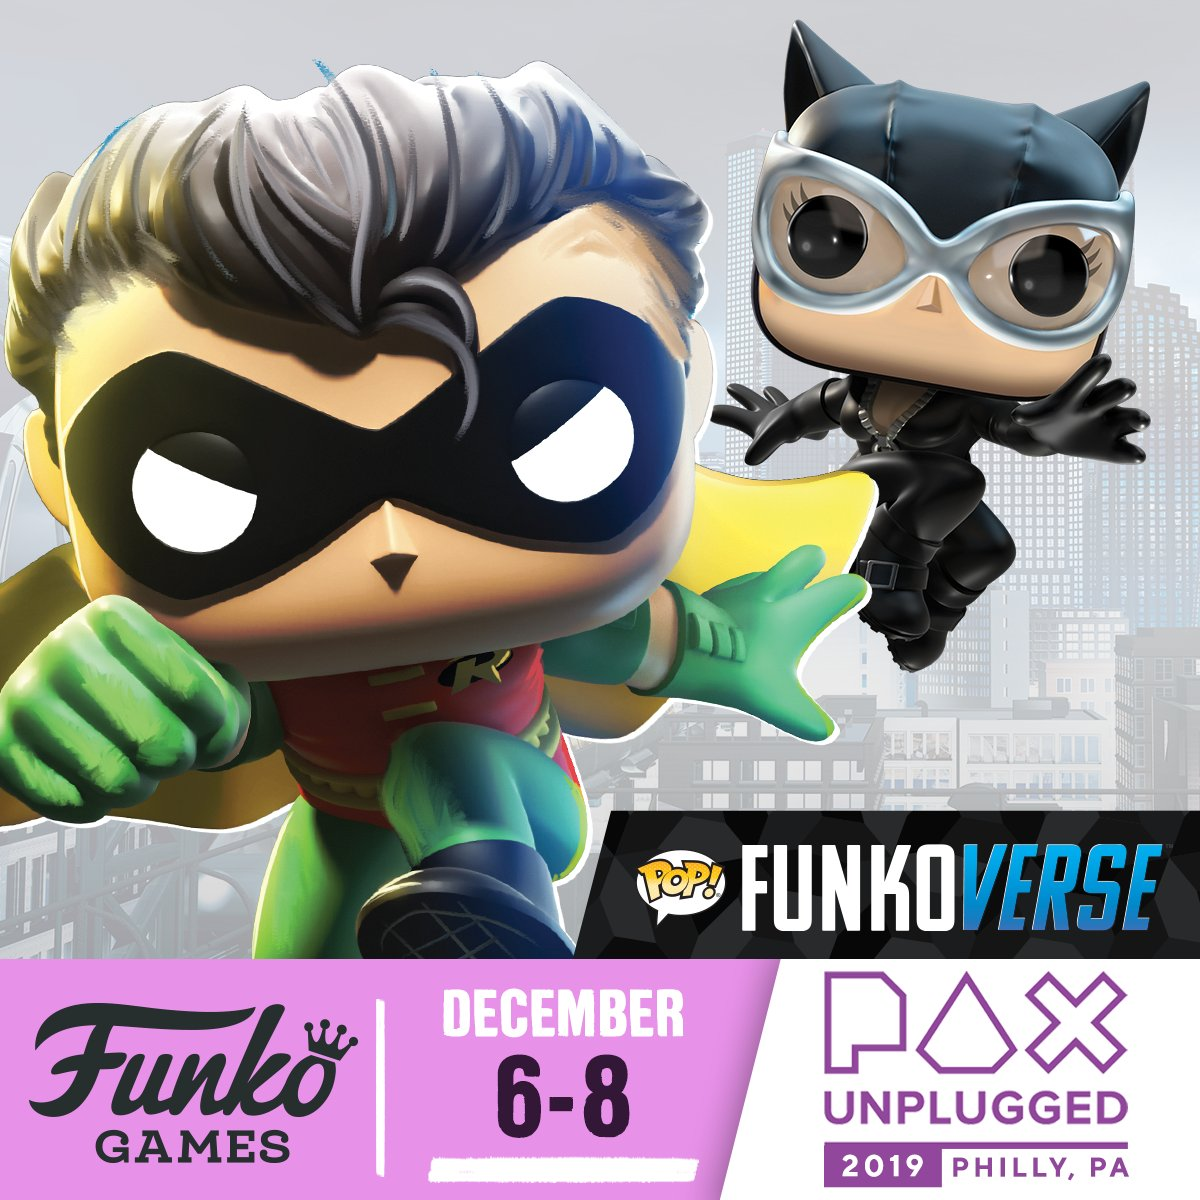 Funko Games at PAXU! funko.com/blog/article/f… #FunkoGames #Funko #Funkoverse